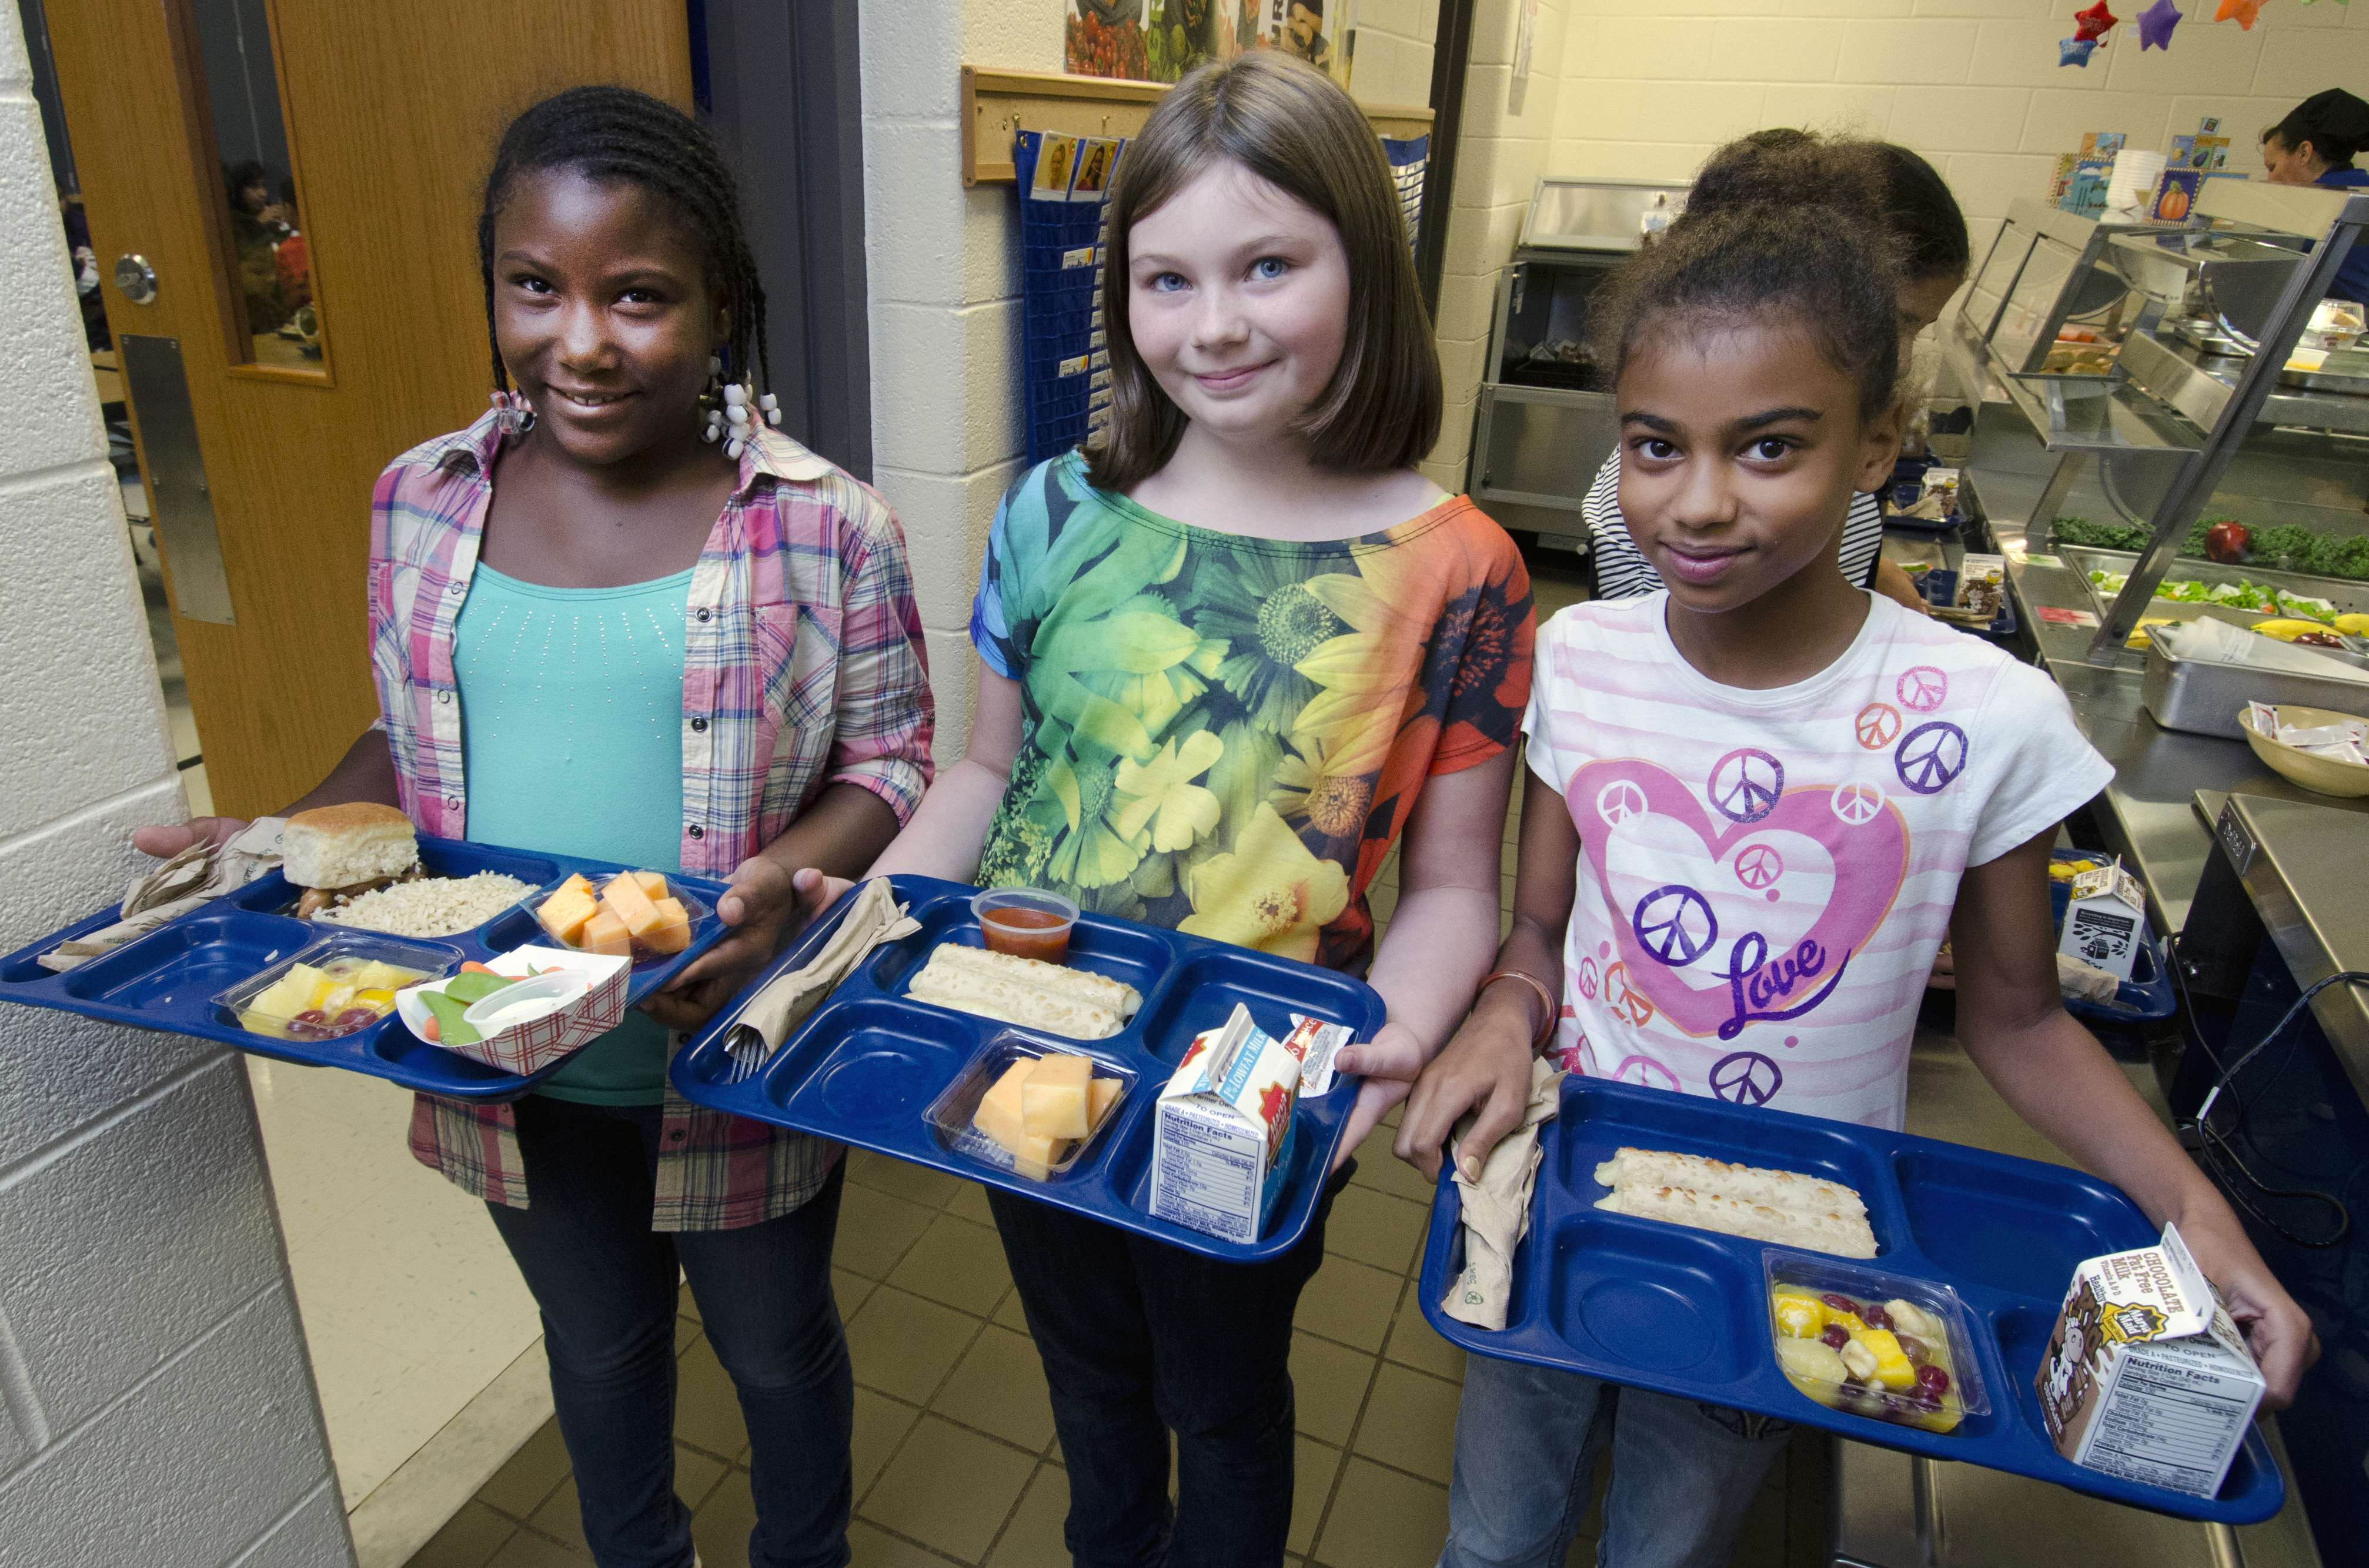 New school lunch regulations will be bringing more whole grains and less salt to cafeterias this school year.